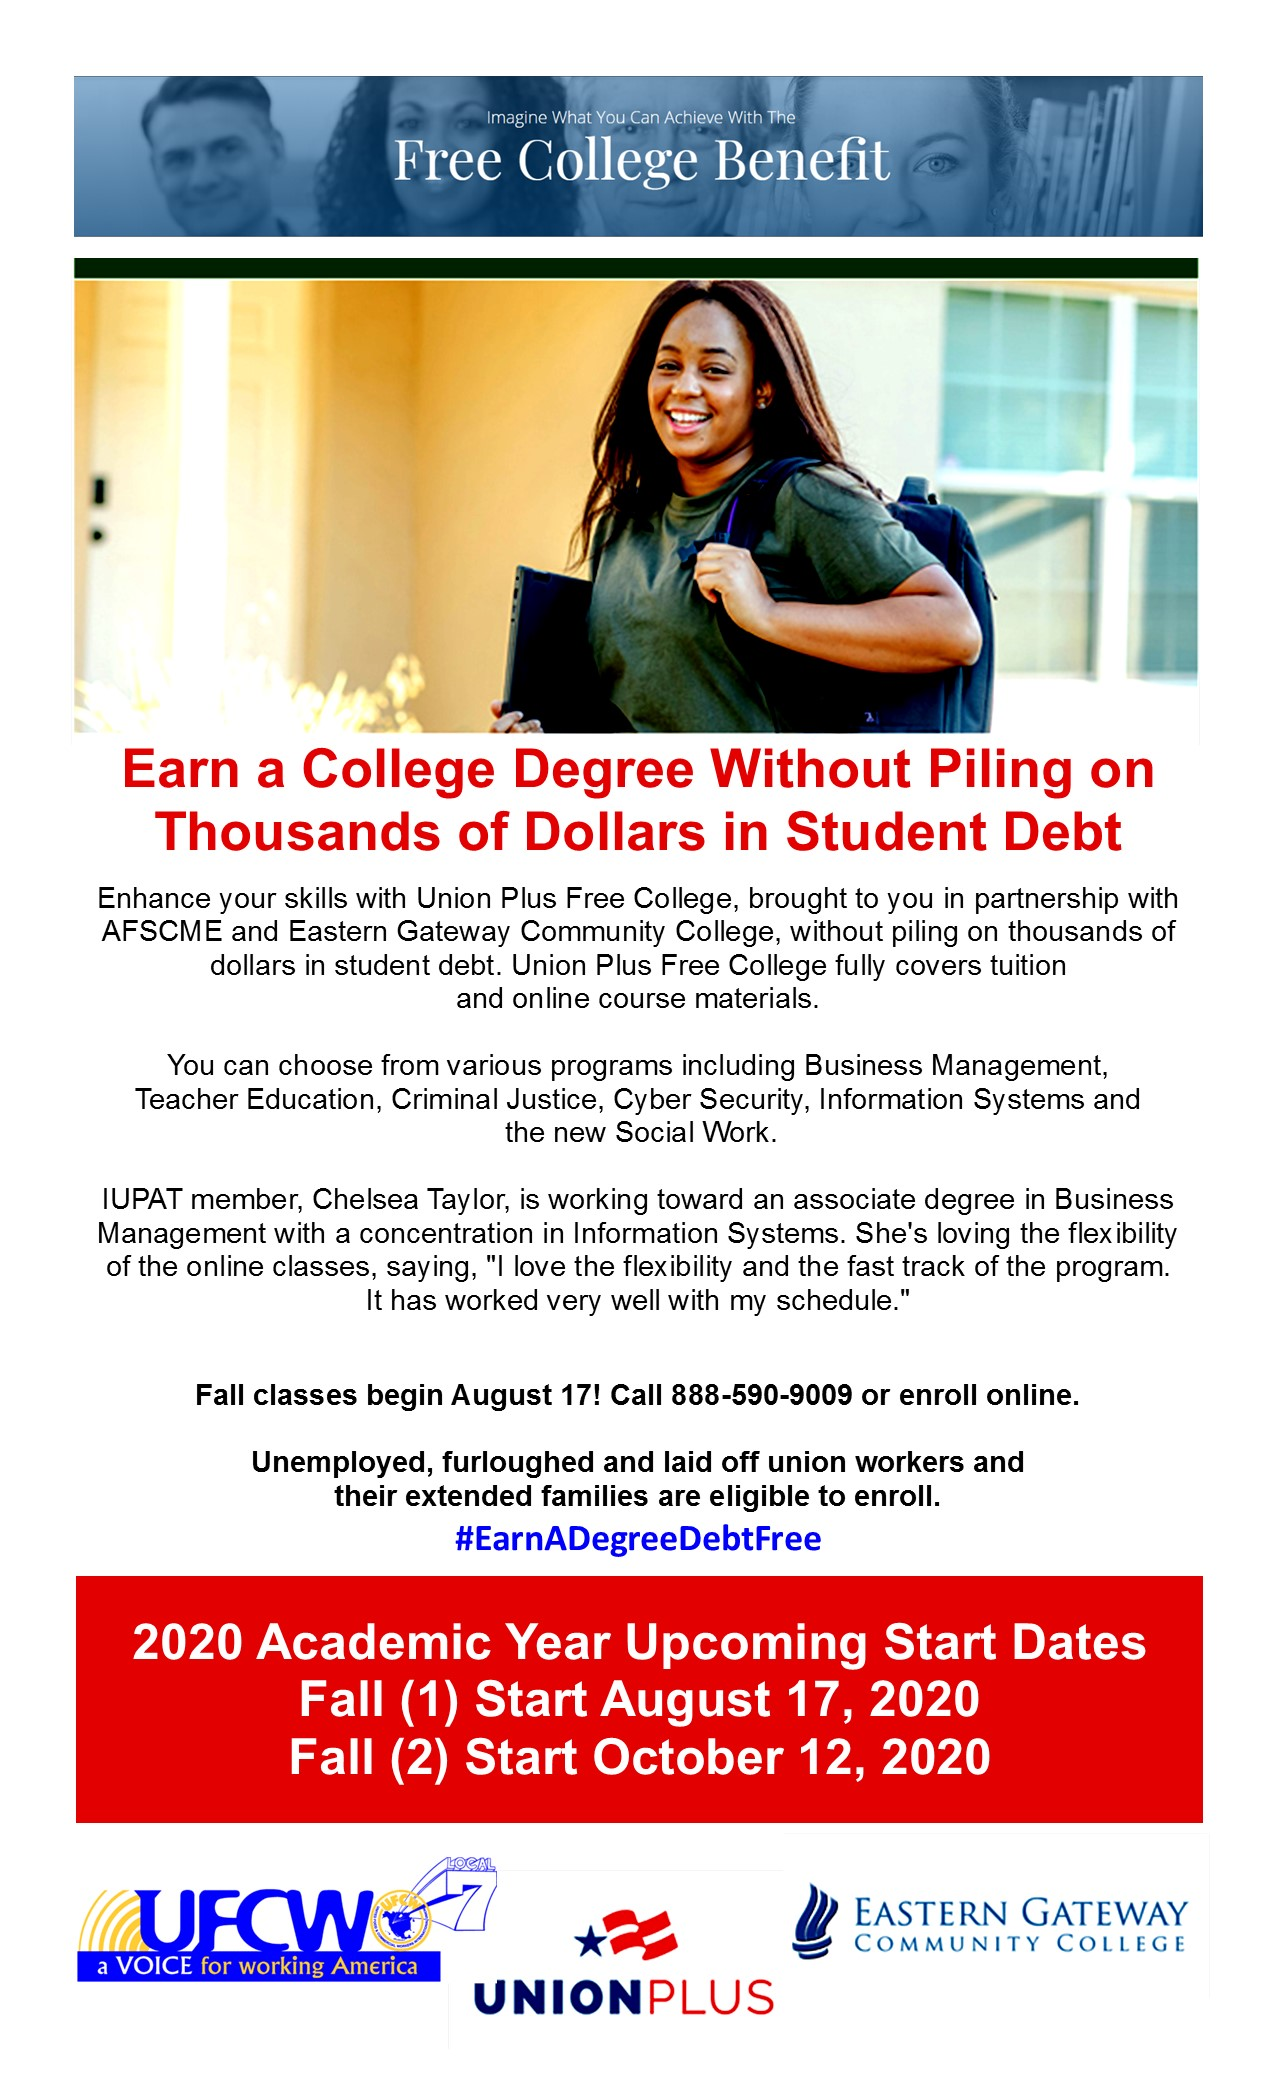 Free College Benefit!